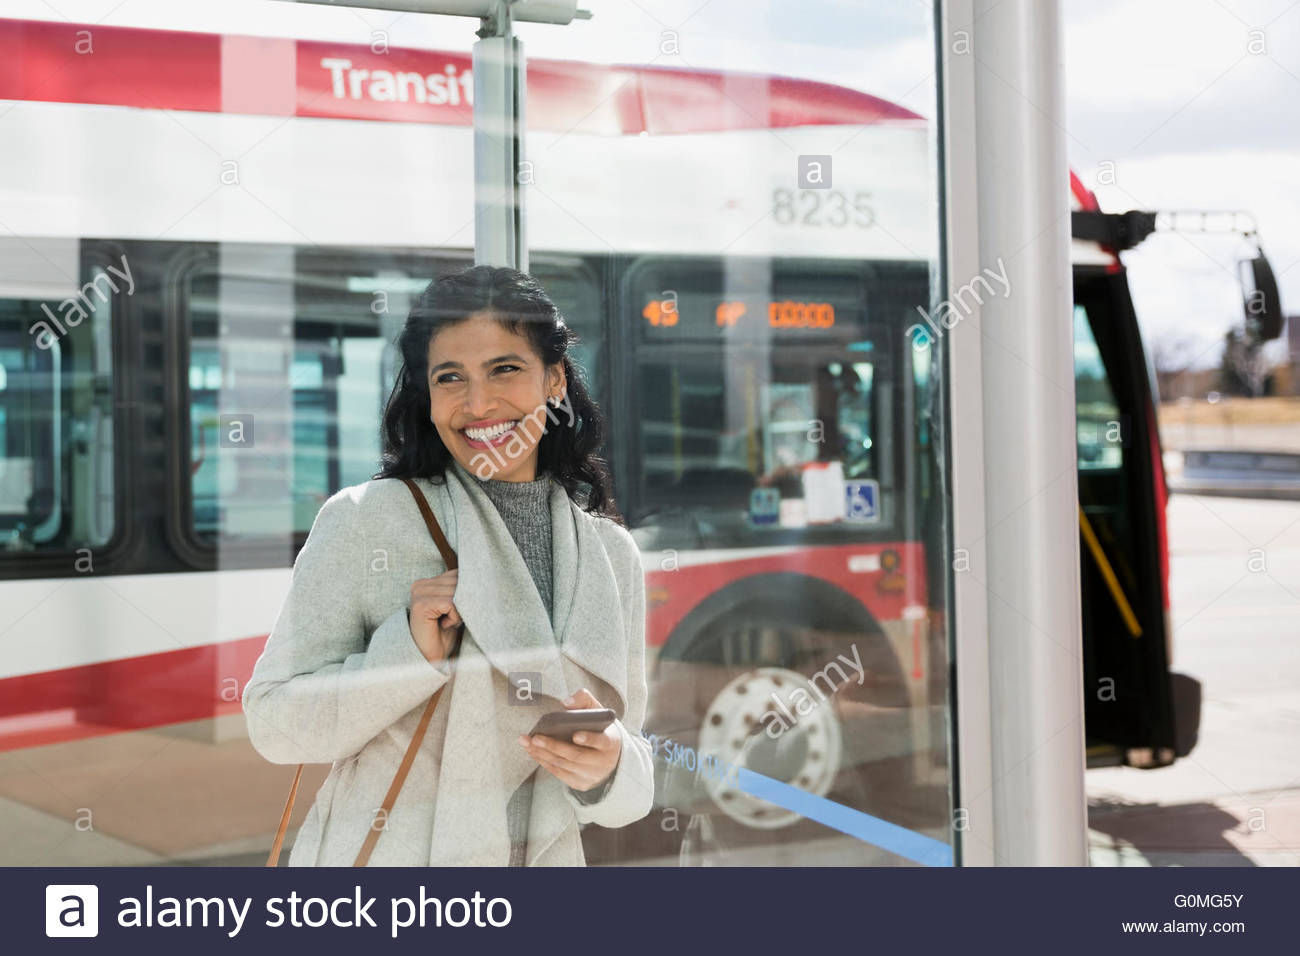 Smiling woman waiting at bus stop - Stock Image